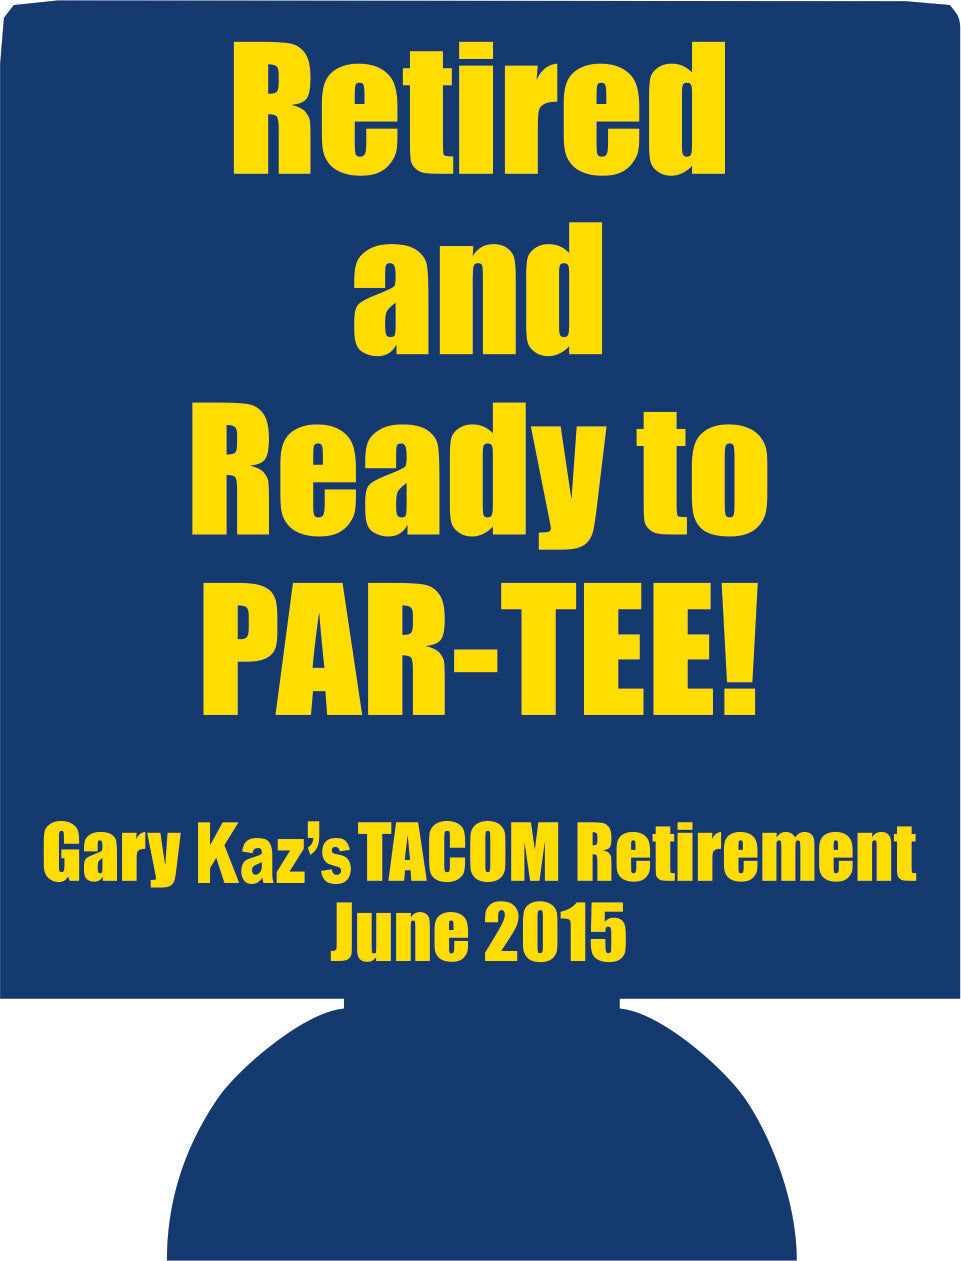 Retired and ready to Par Tee can coolers party favor decorations